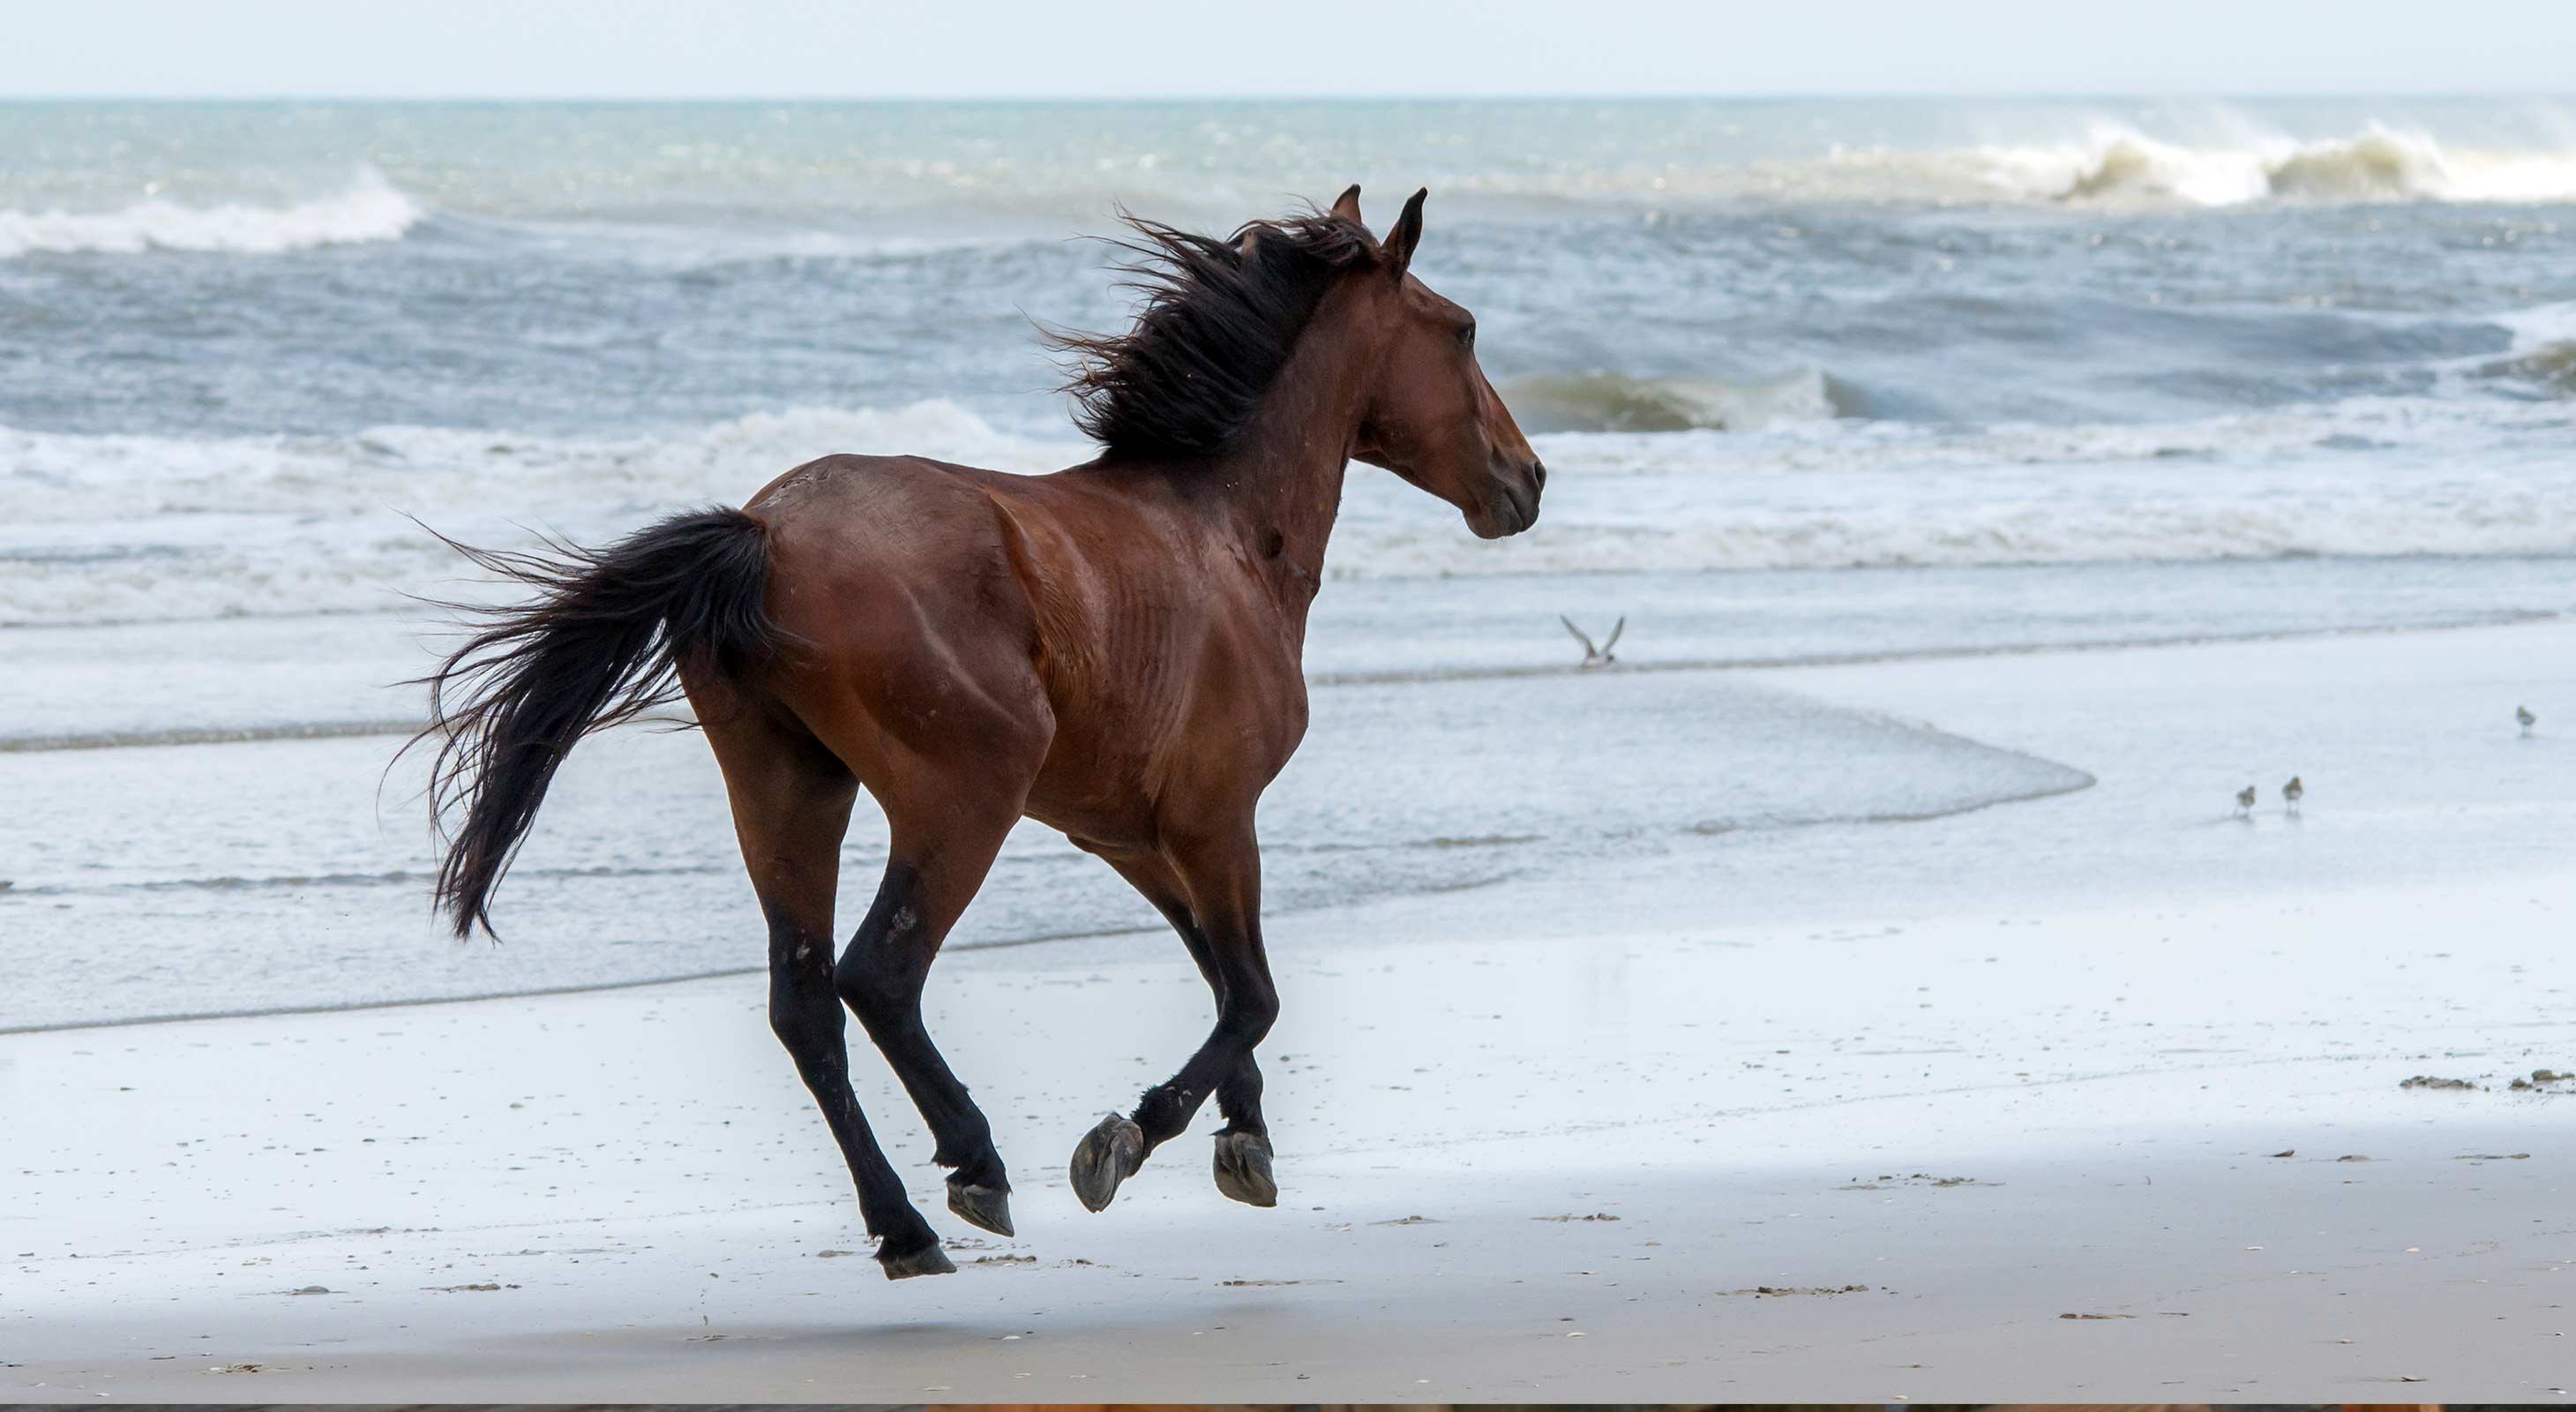 Horse Running on the Beach in North Carolina